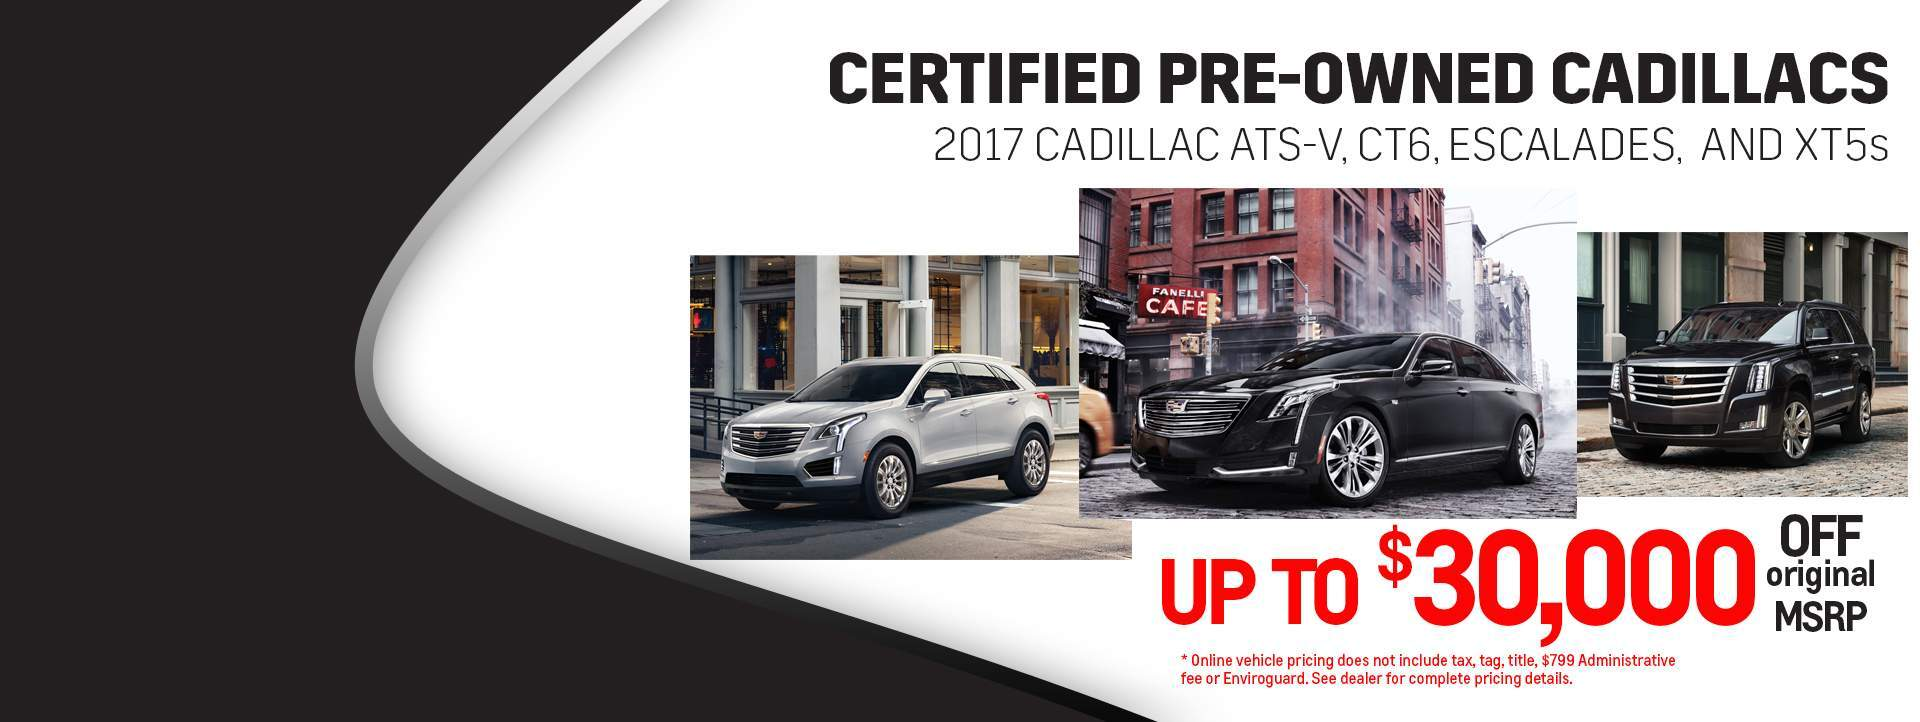 Certified Pre-Owned Cadillacs